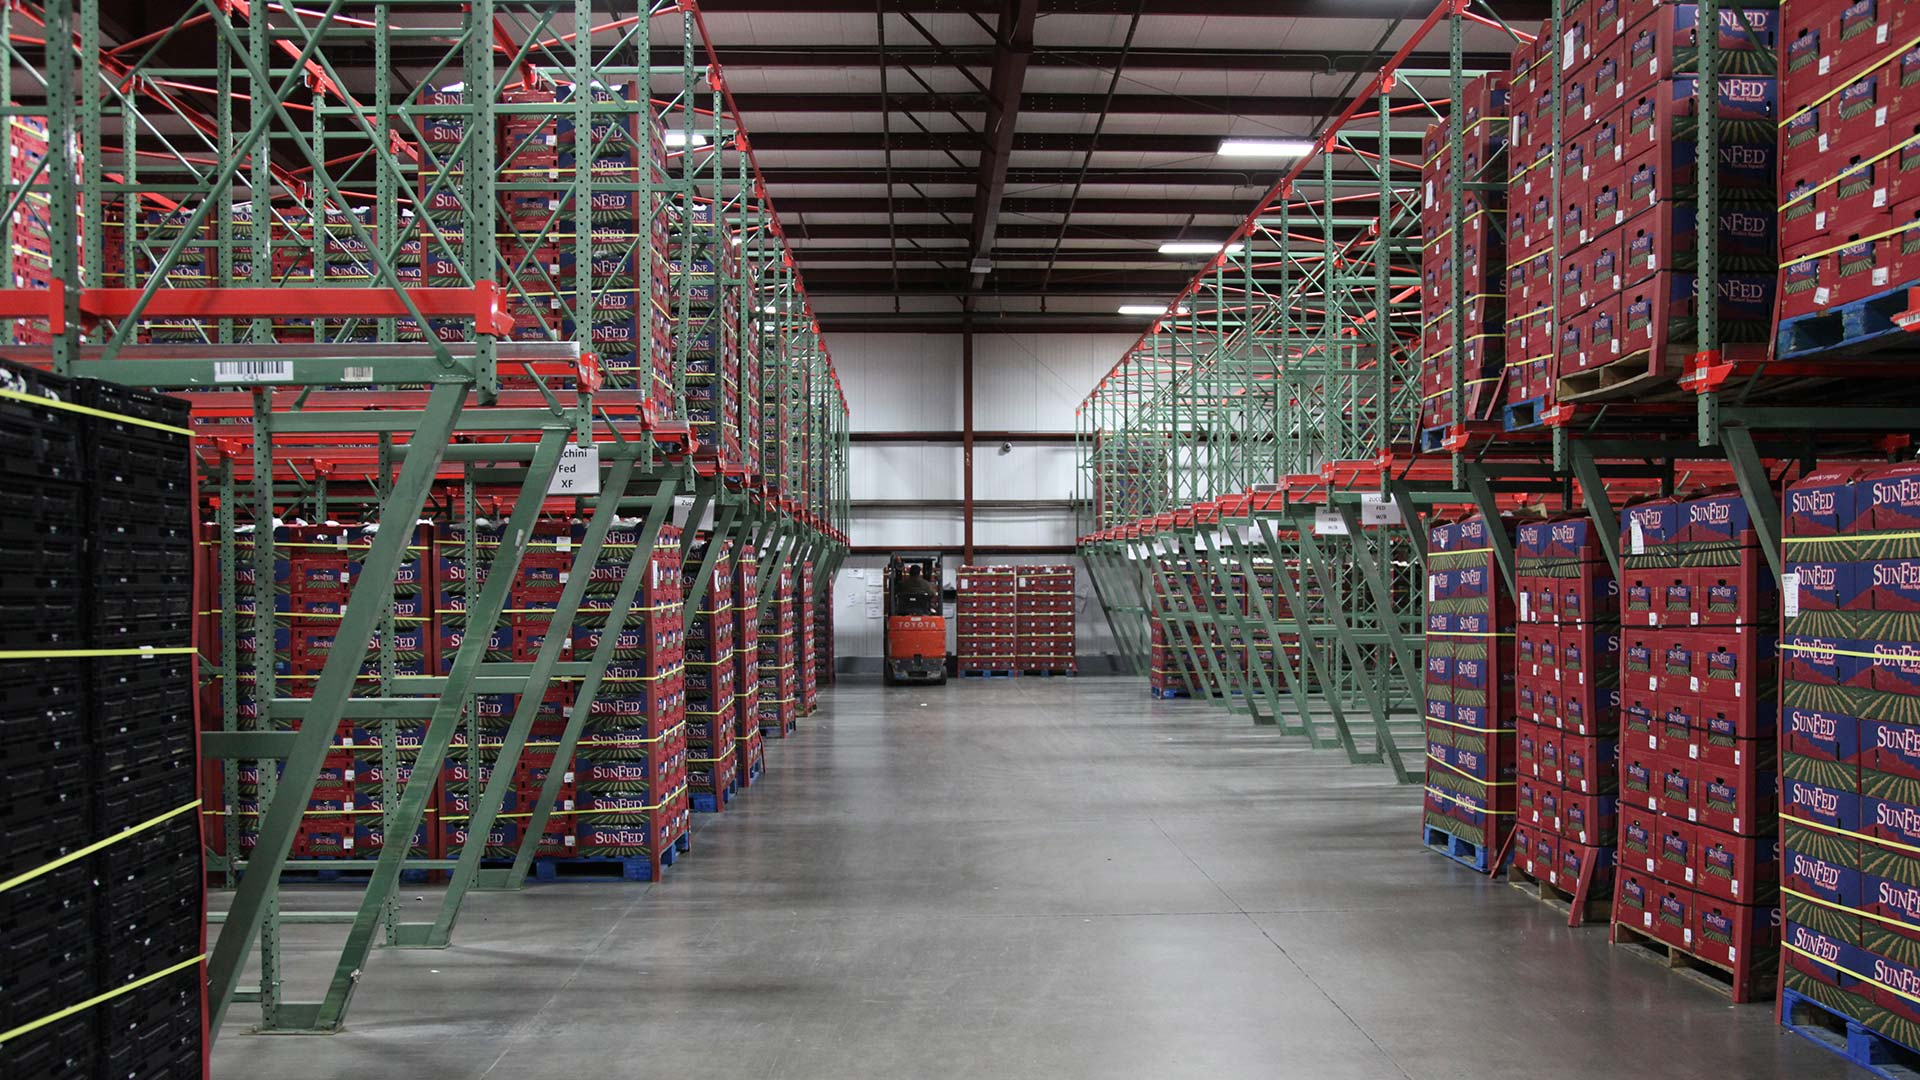 A warehouse storing produce.